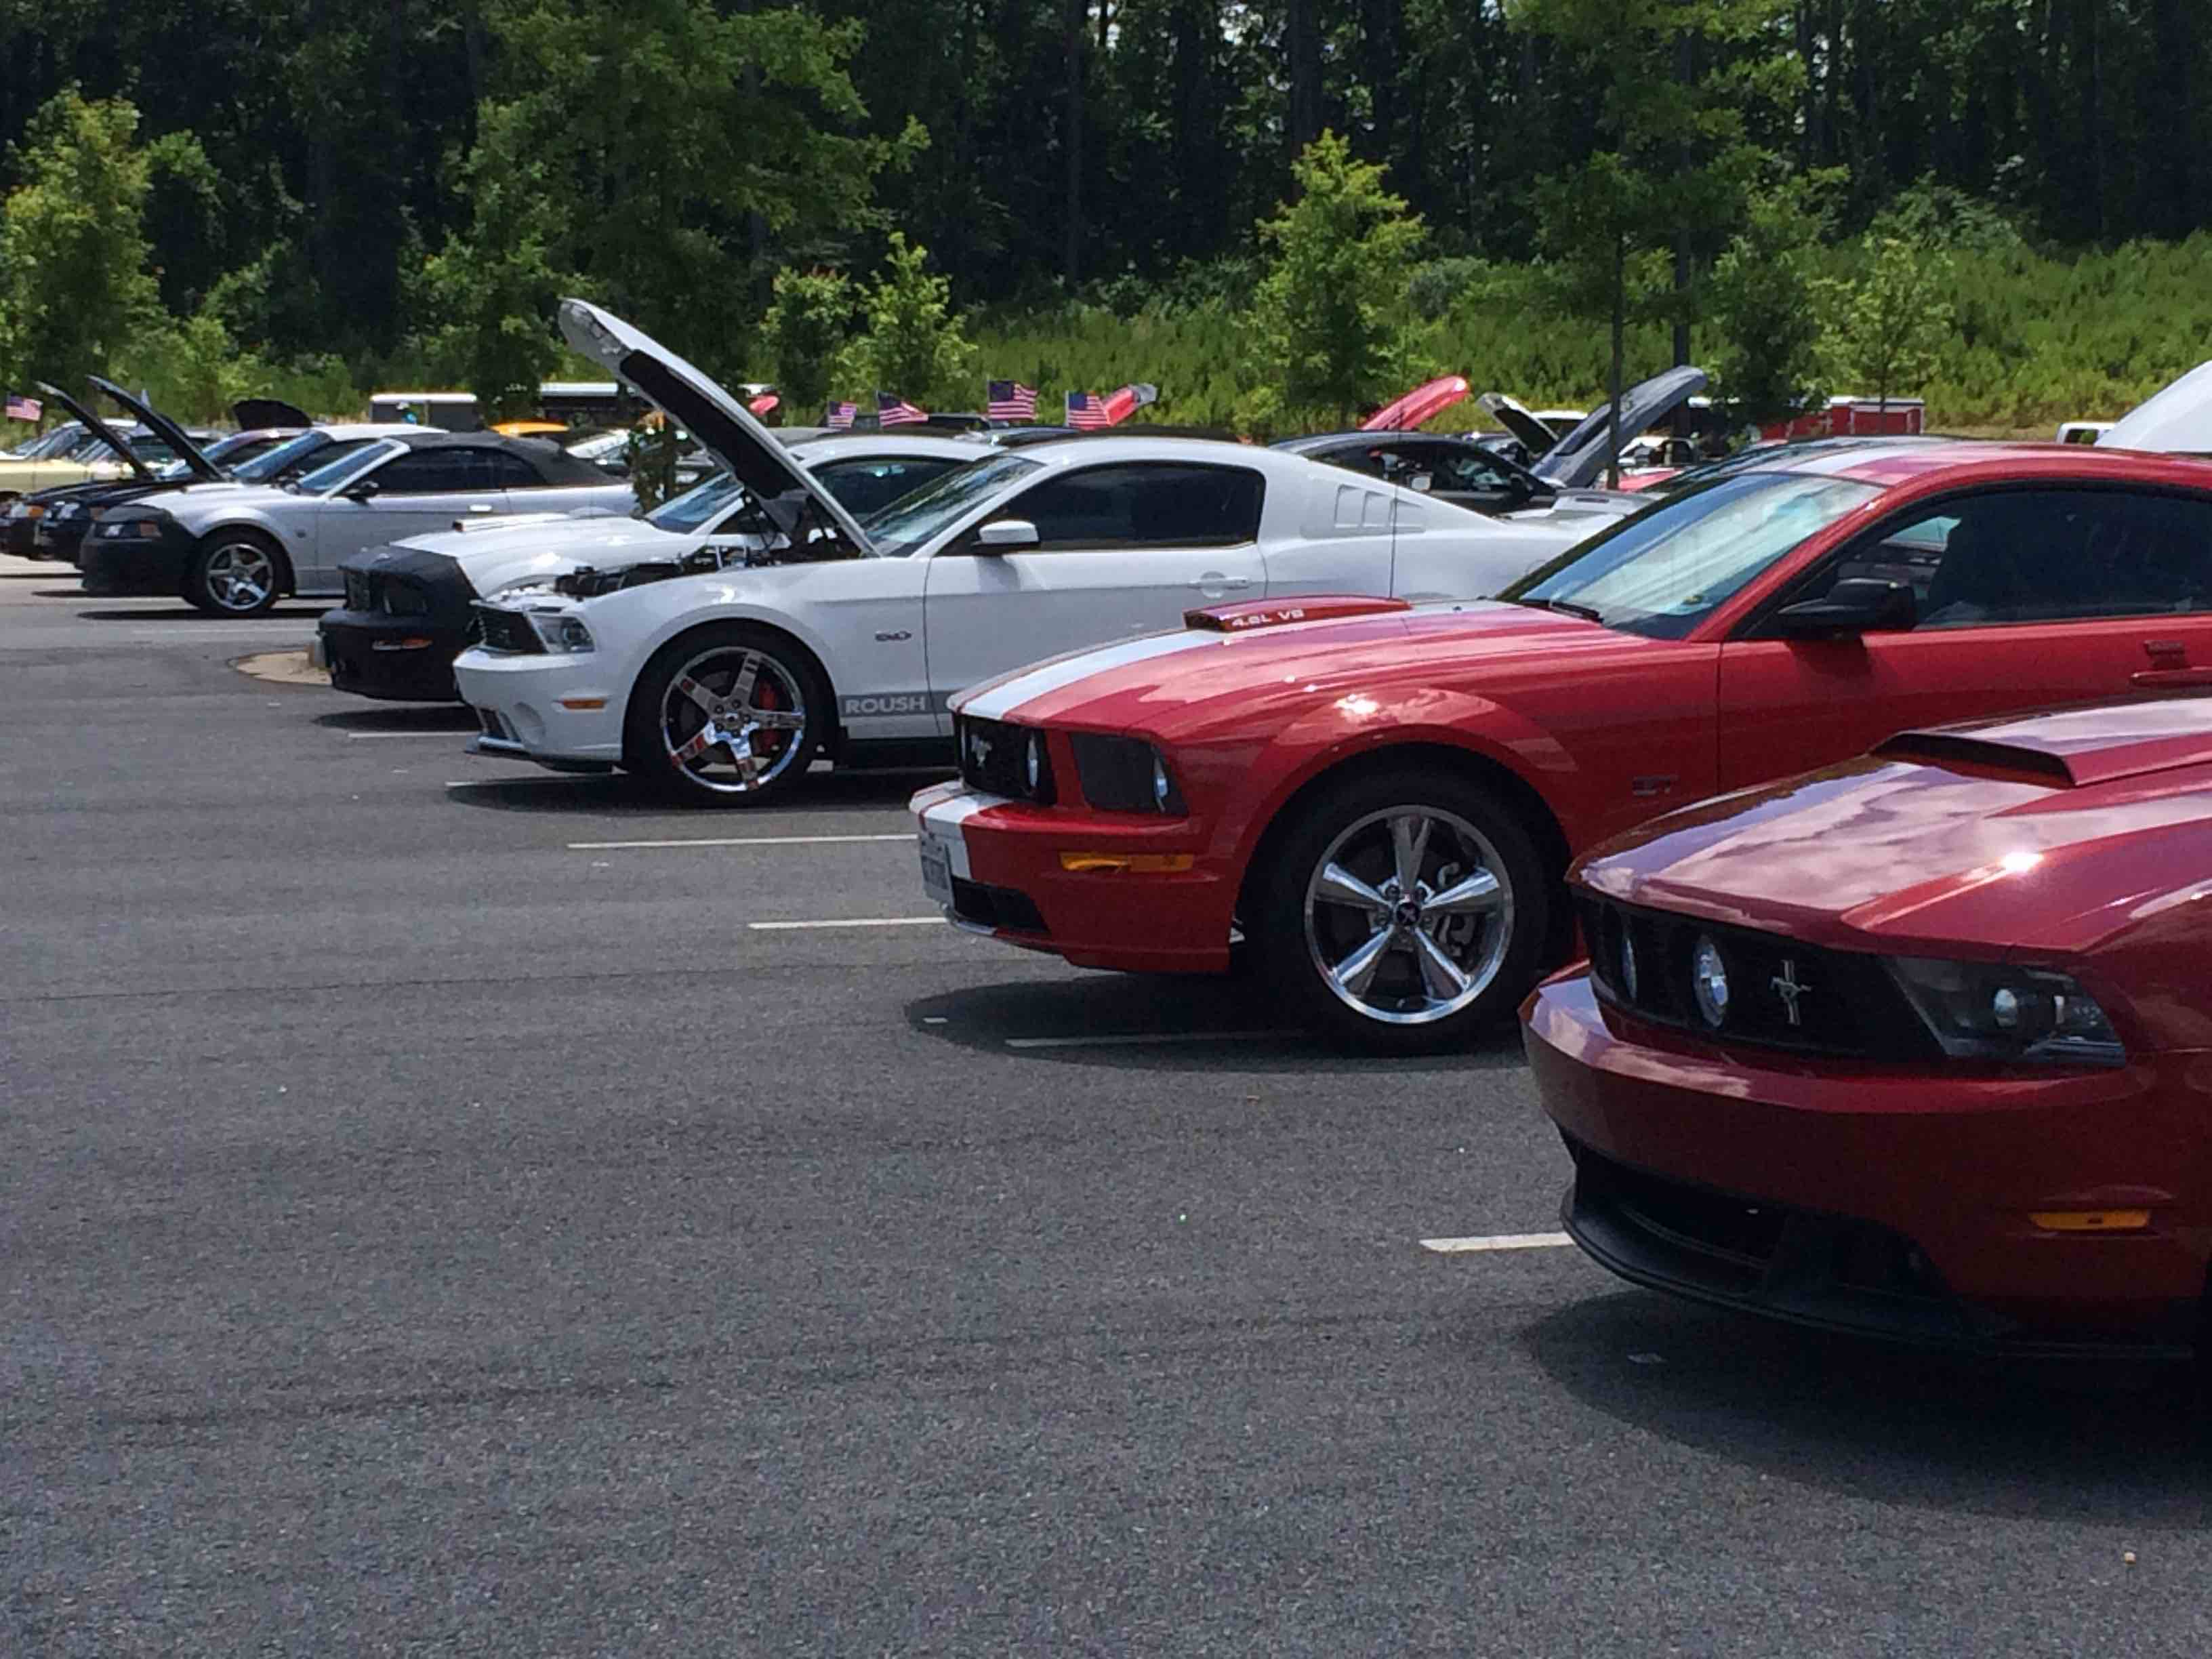 Modern ford mustangs at a car show 2016